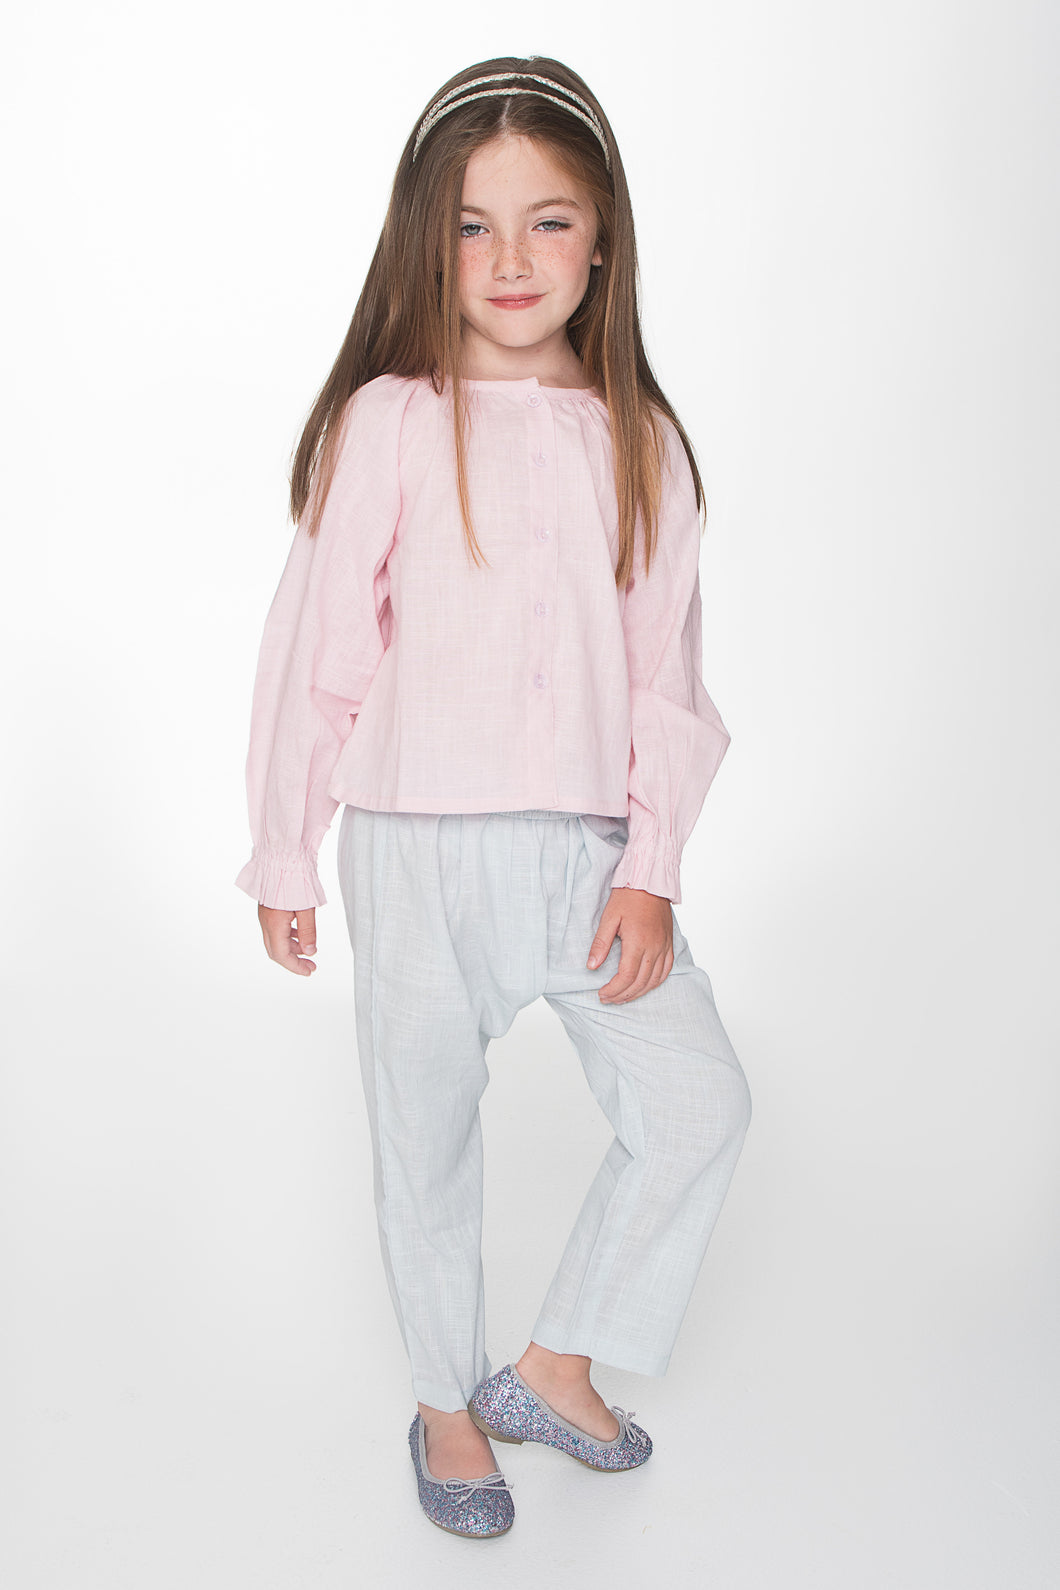 Pink Button Up Blouse with Light Blue Easy Pants 2pc. Set - Kids Wholesale Boutique Clothing, Dress - Girls Dresses, Yo Baby Wholesale - Yo Baby